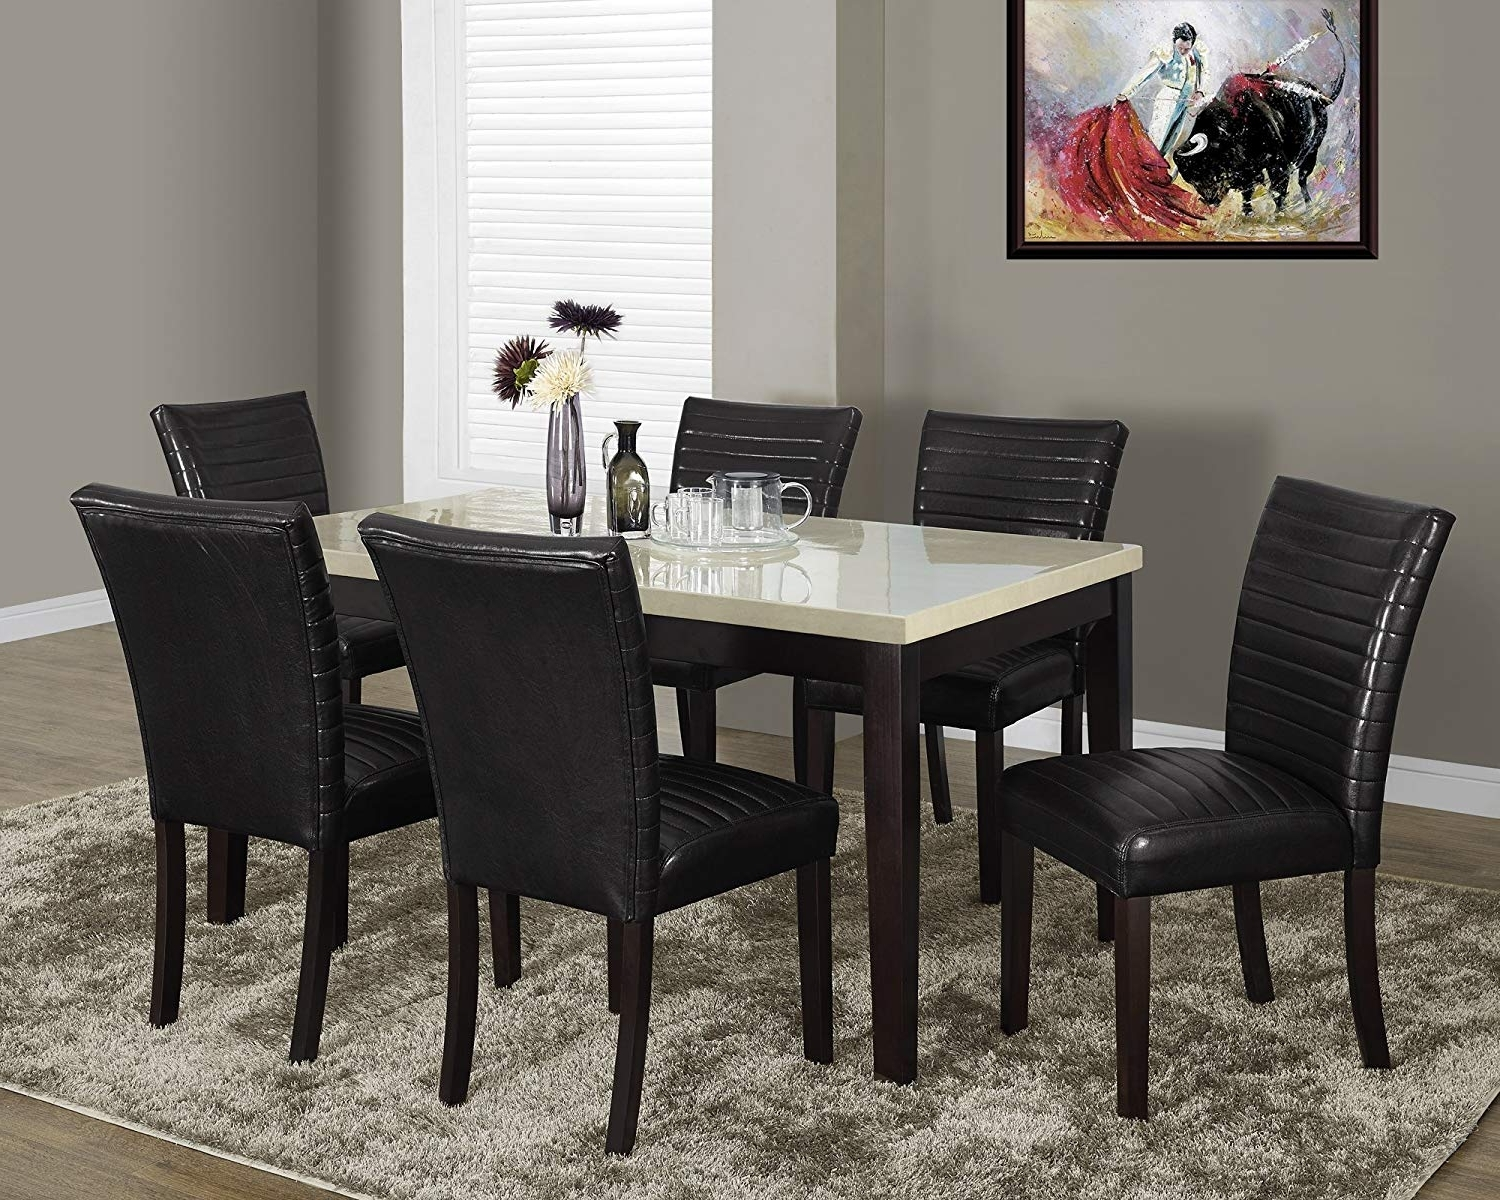 Most Recent Cream Lacquer Dining Tables In Amazon – Monarch Specialties Cream Lacquered Marble Look Dining (View 11 of 25)